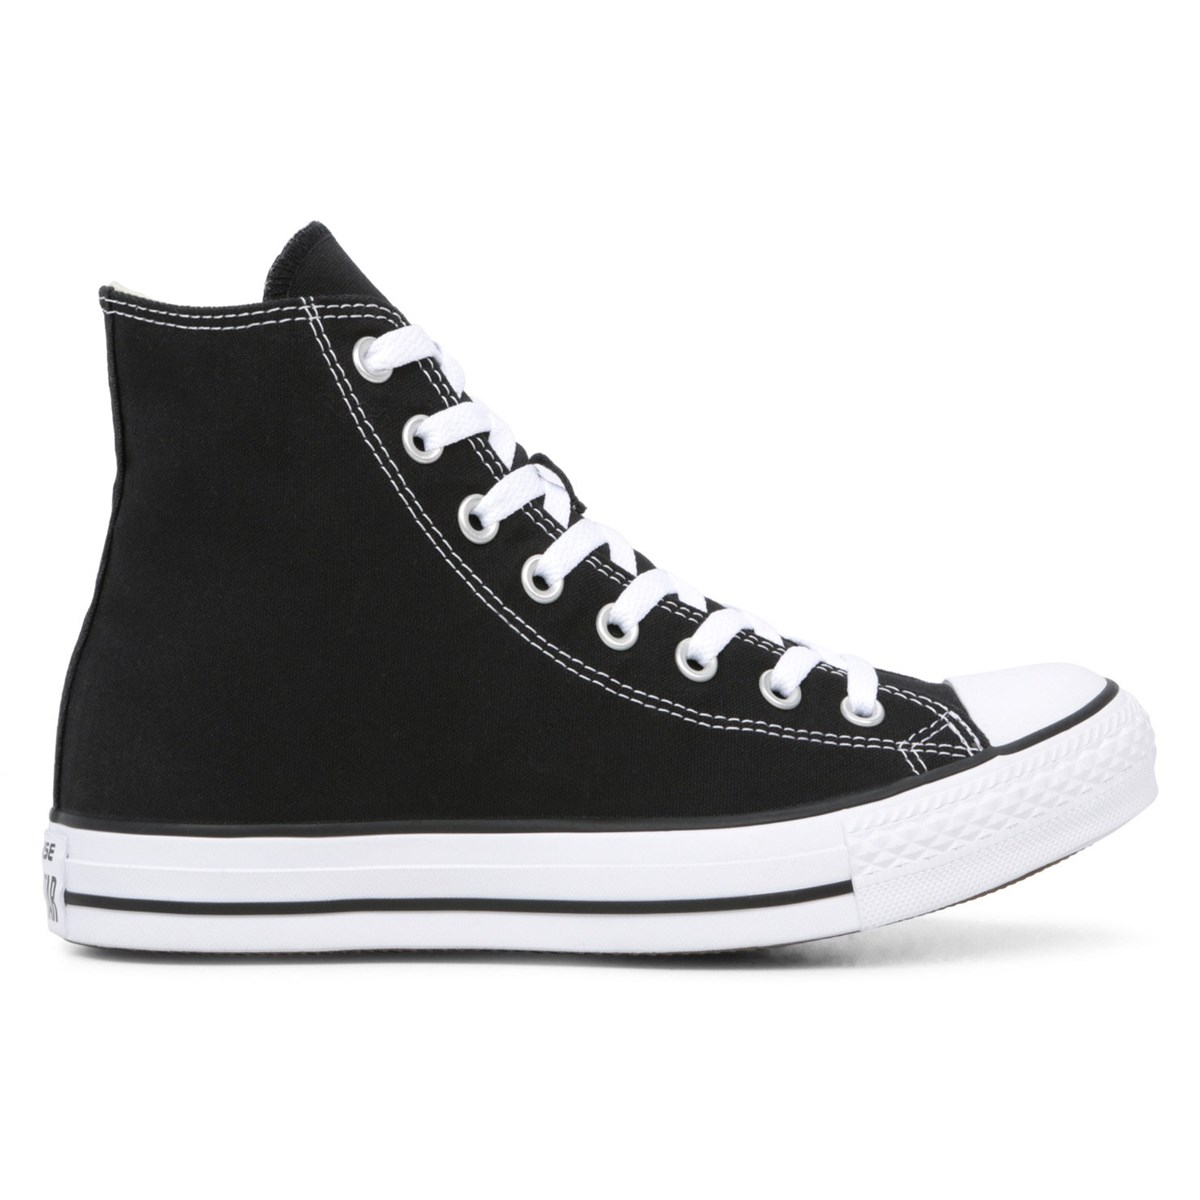 Baskets Chuck Taylor All Star Classic pour hommes  302a1aae7